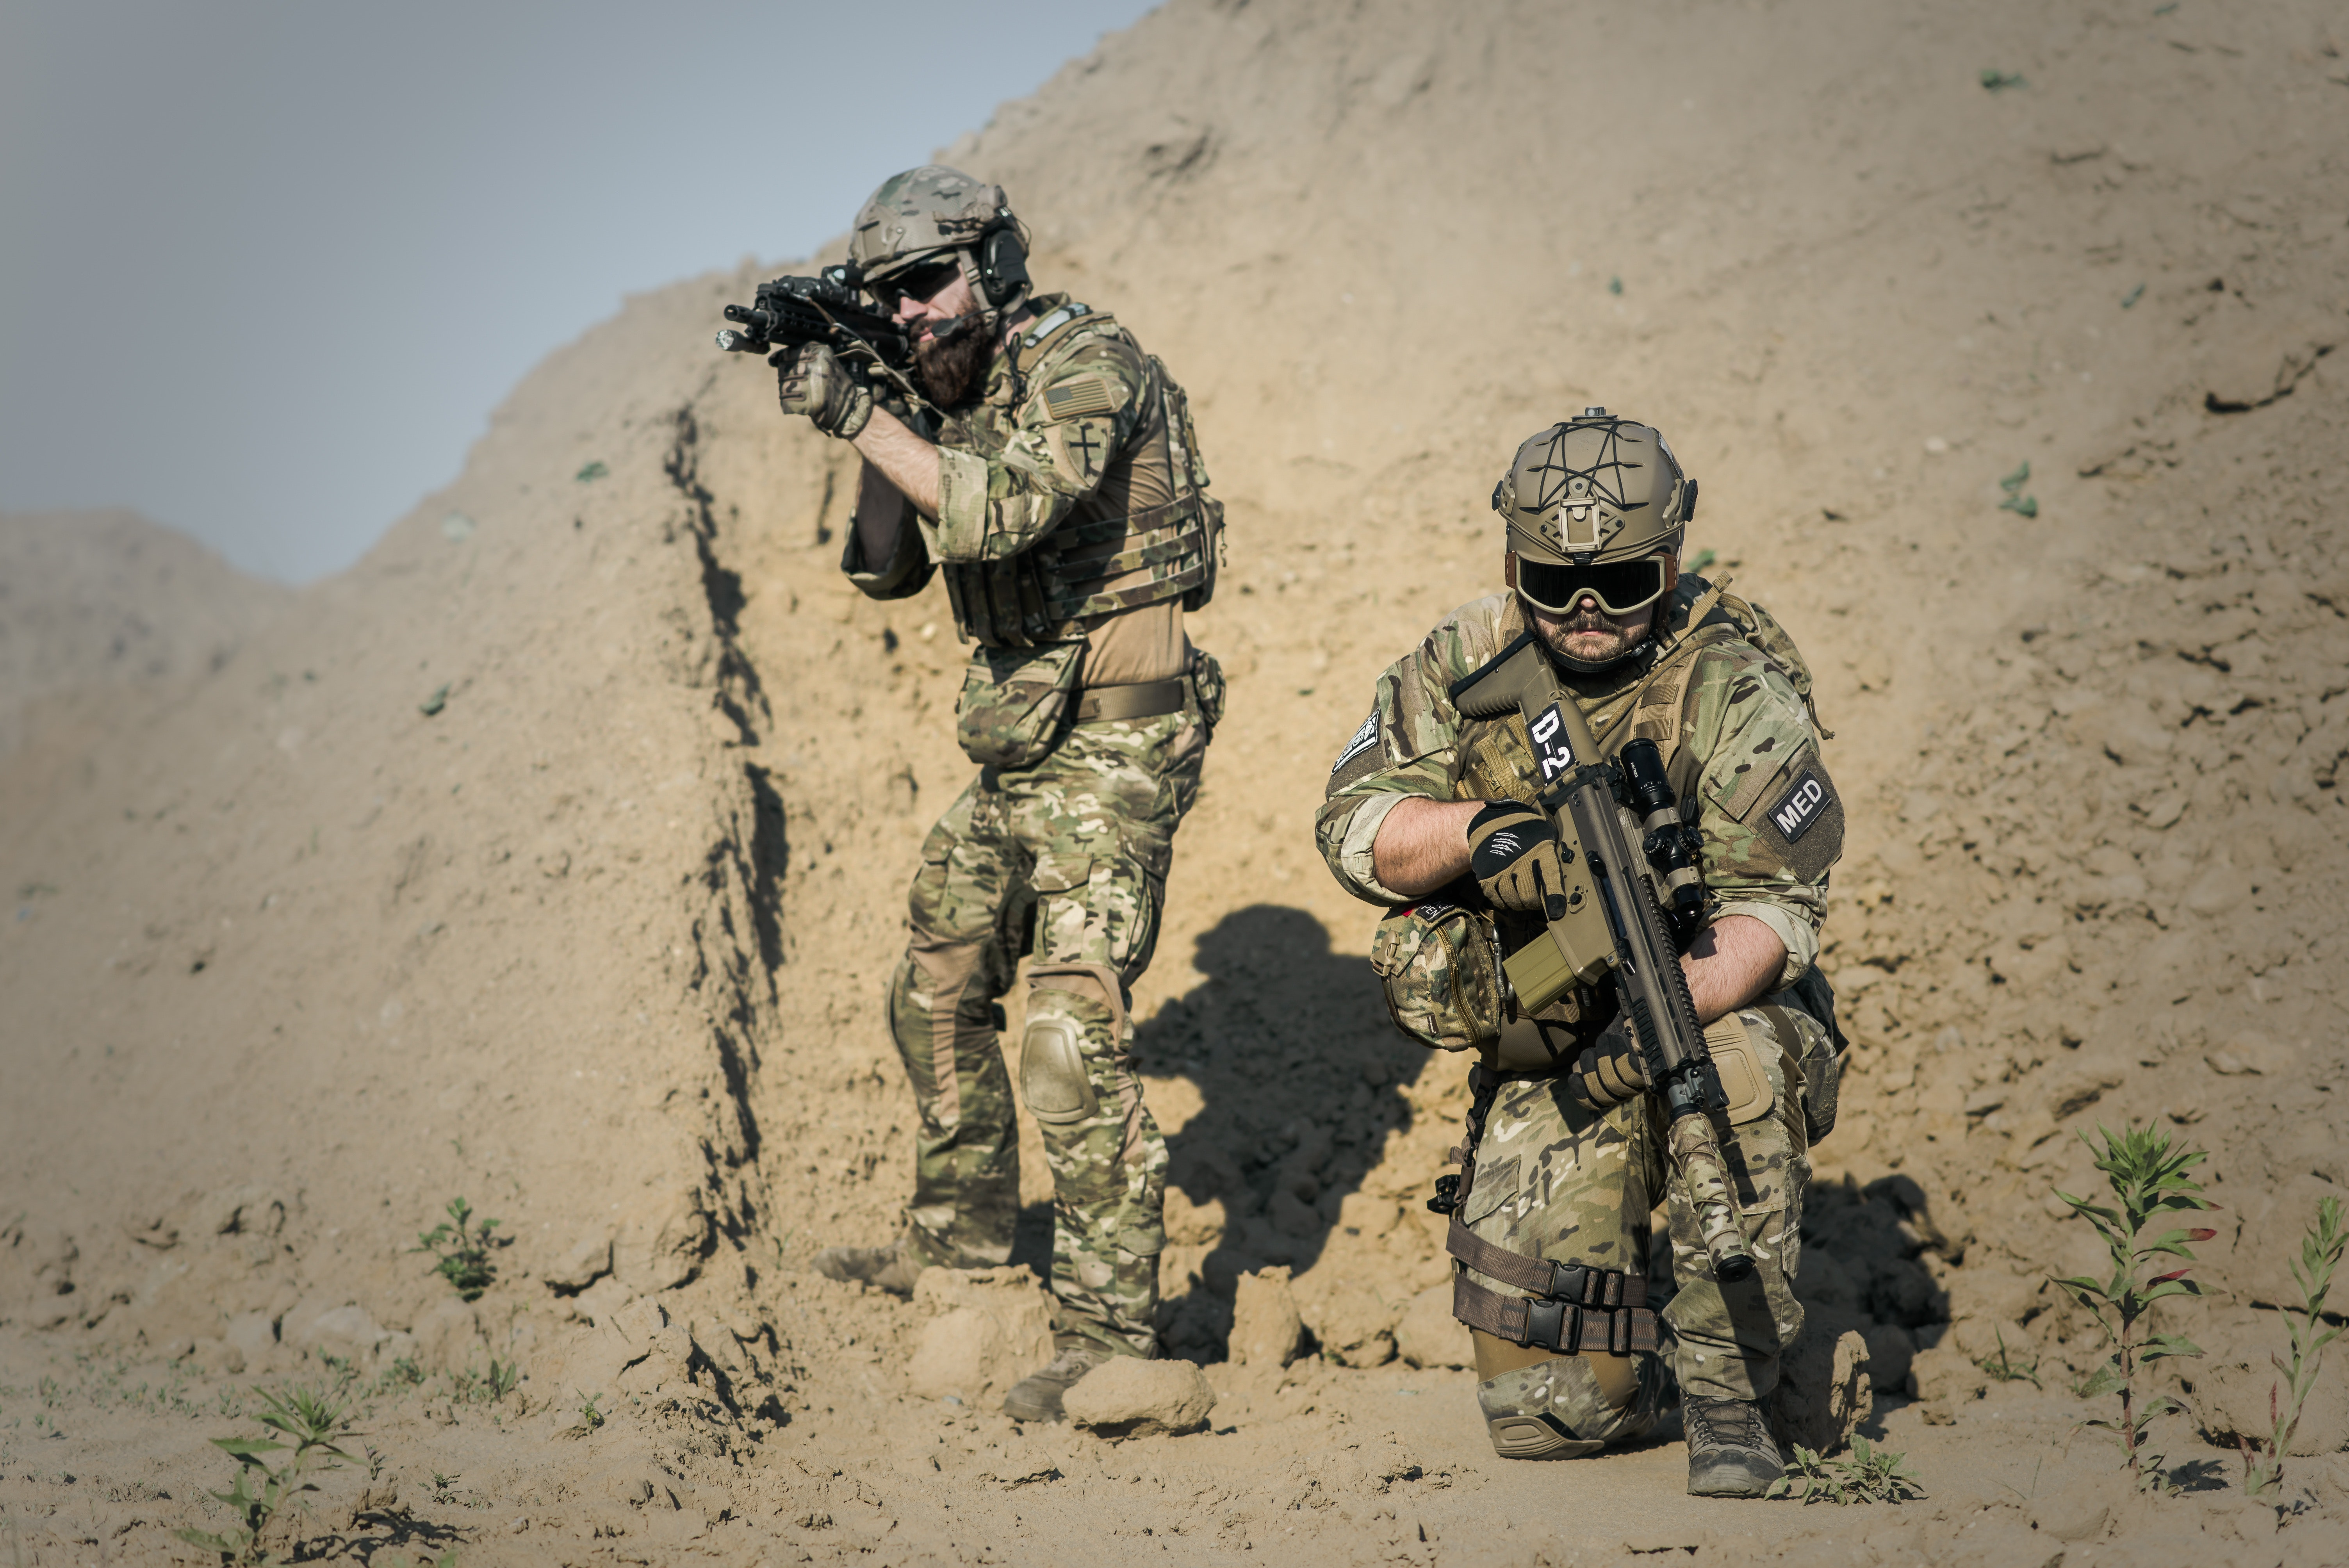 2 Soldier in Desert during Daytime · Free Stock Photo